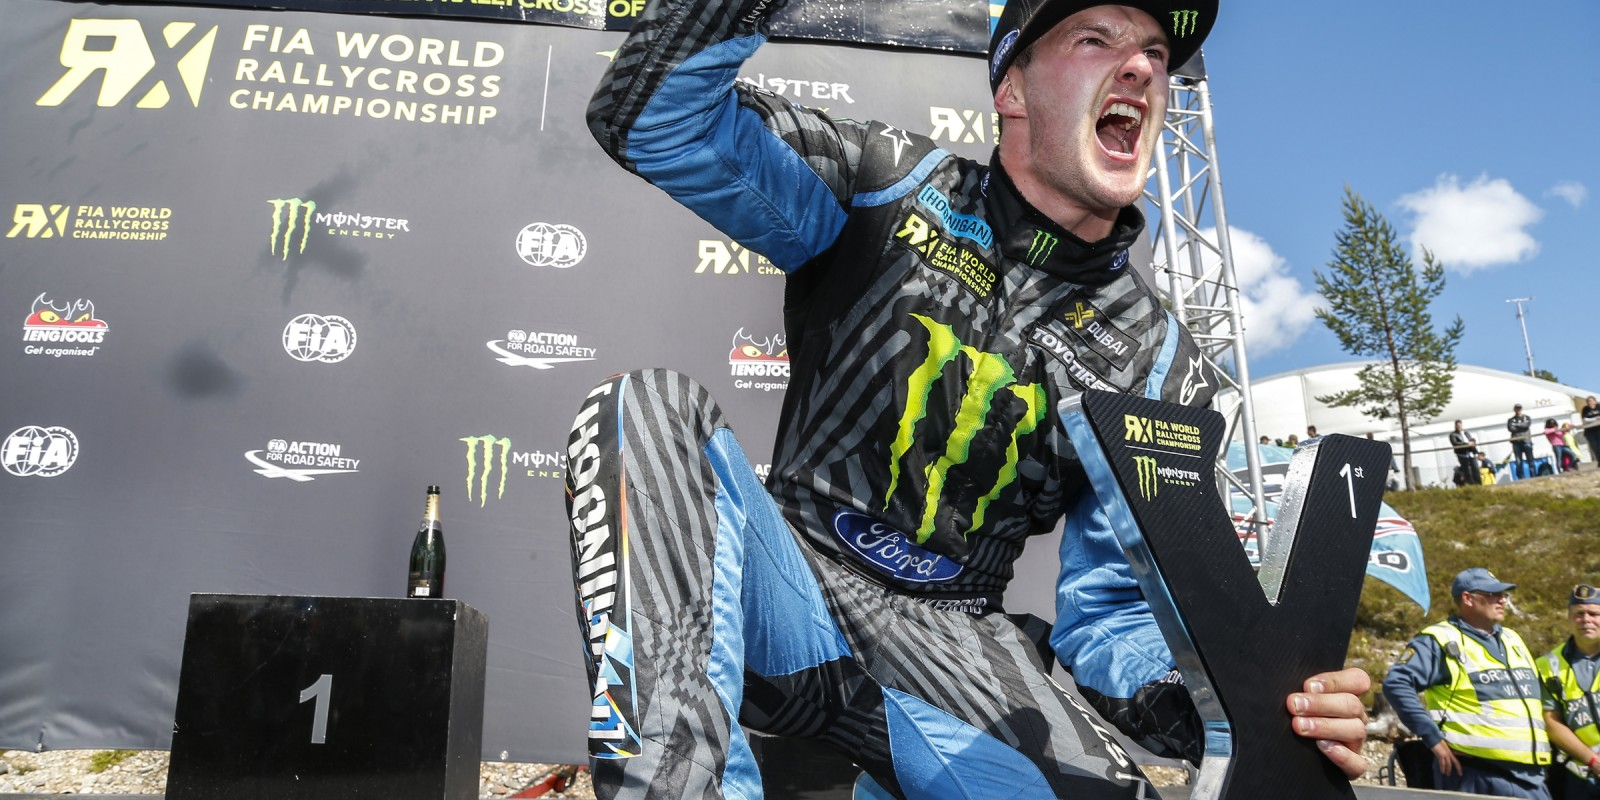 Sunday images from the 2016 World RX of Sweden